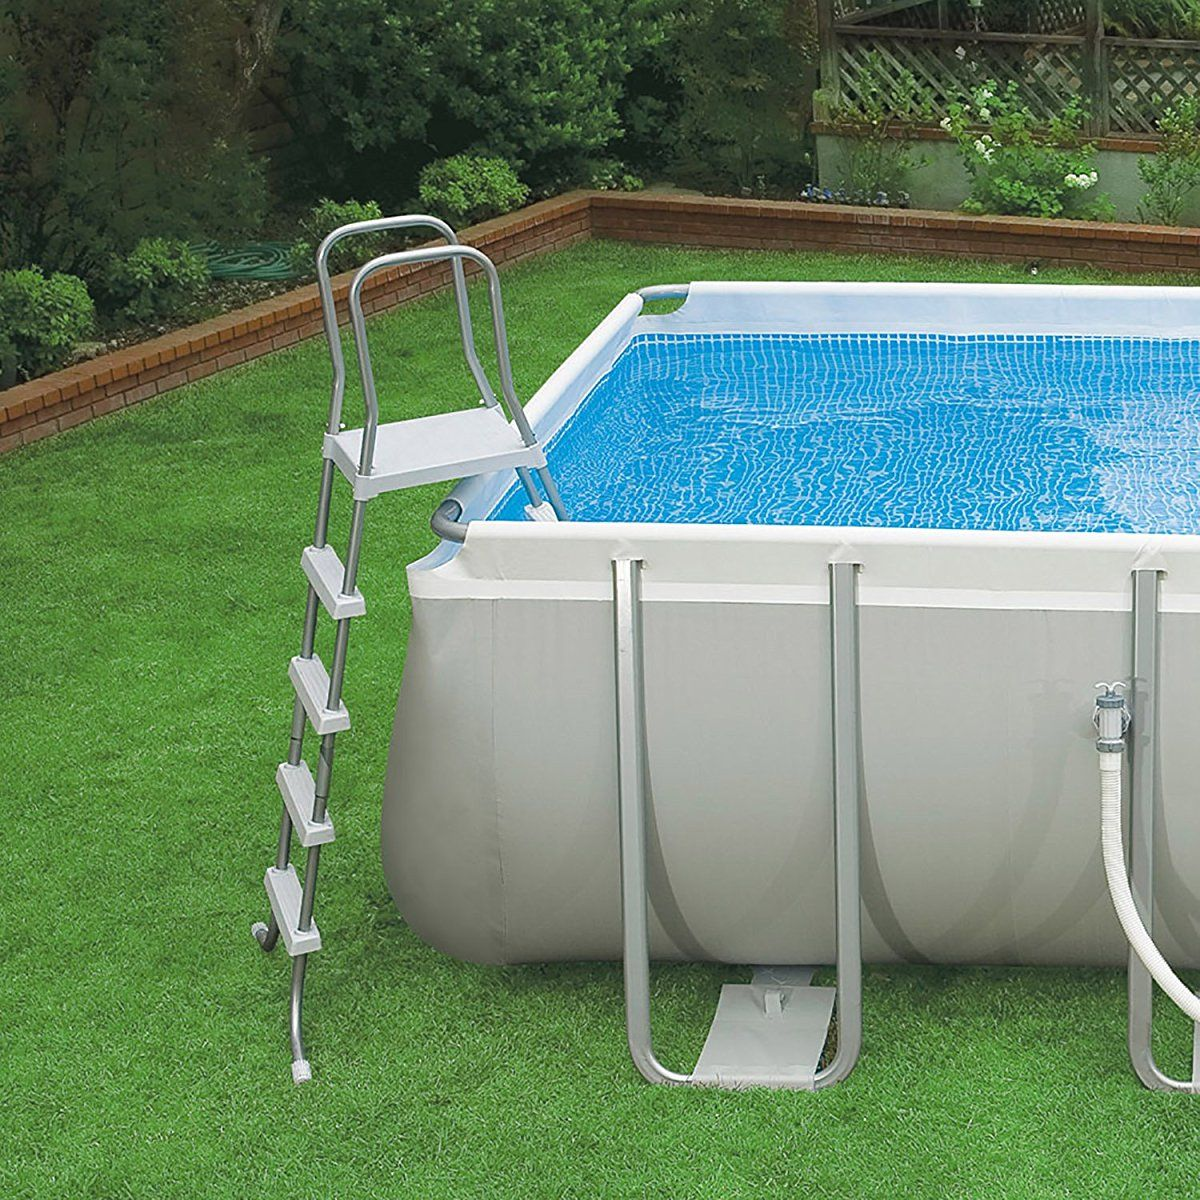 Aldi Intex Pool Intex 32ft X 16ft X 52in Ultra Frame Rectangular Pool Set With